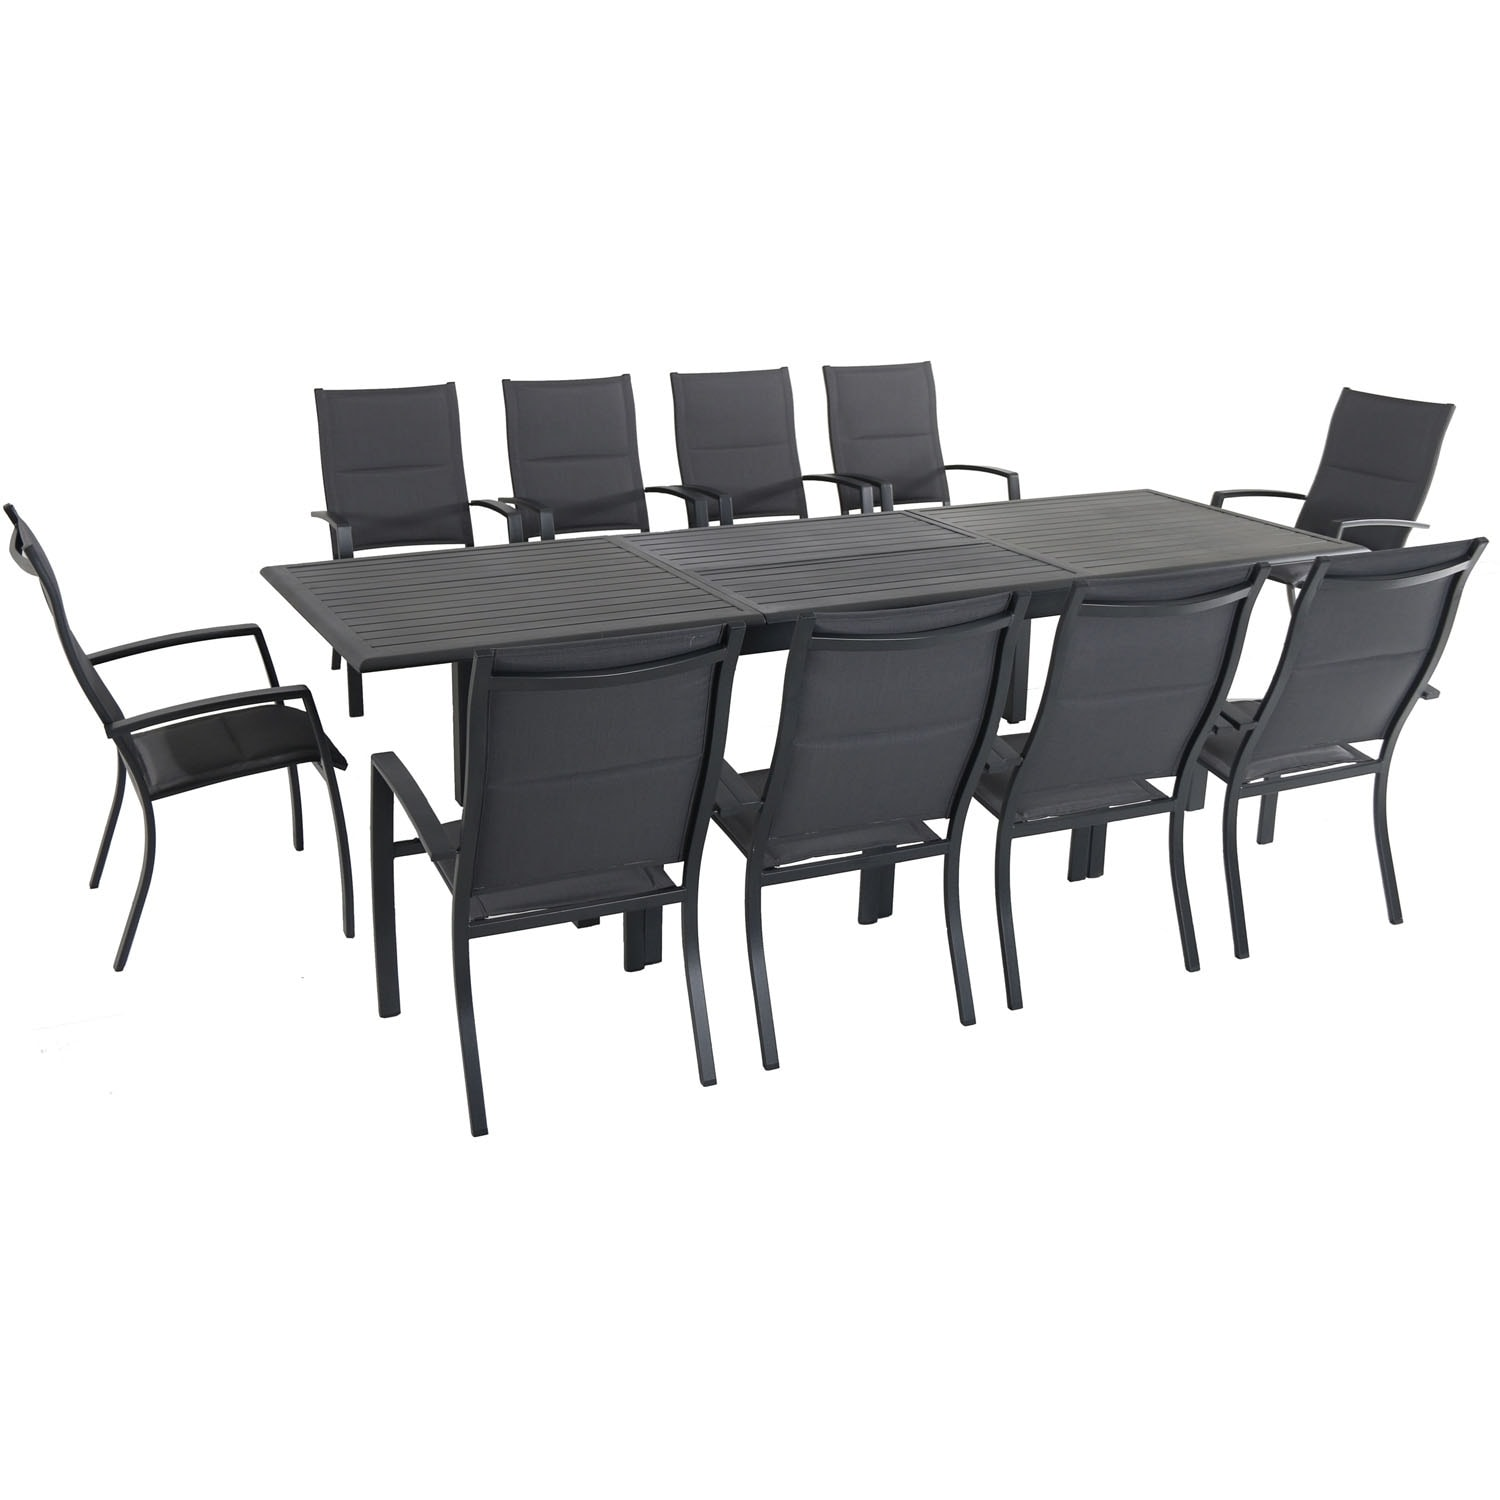 Cambridge Bryn 11-Piece Dining Set with 10 Padded Sling Chairs and an Expandable 40 x 118 Table